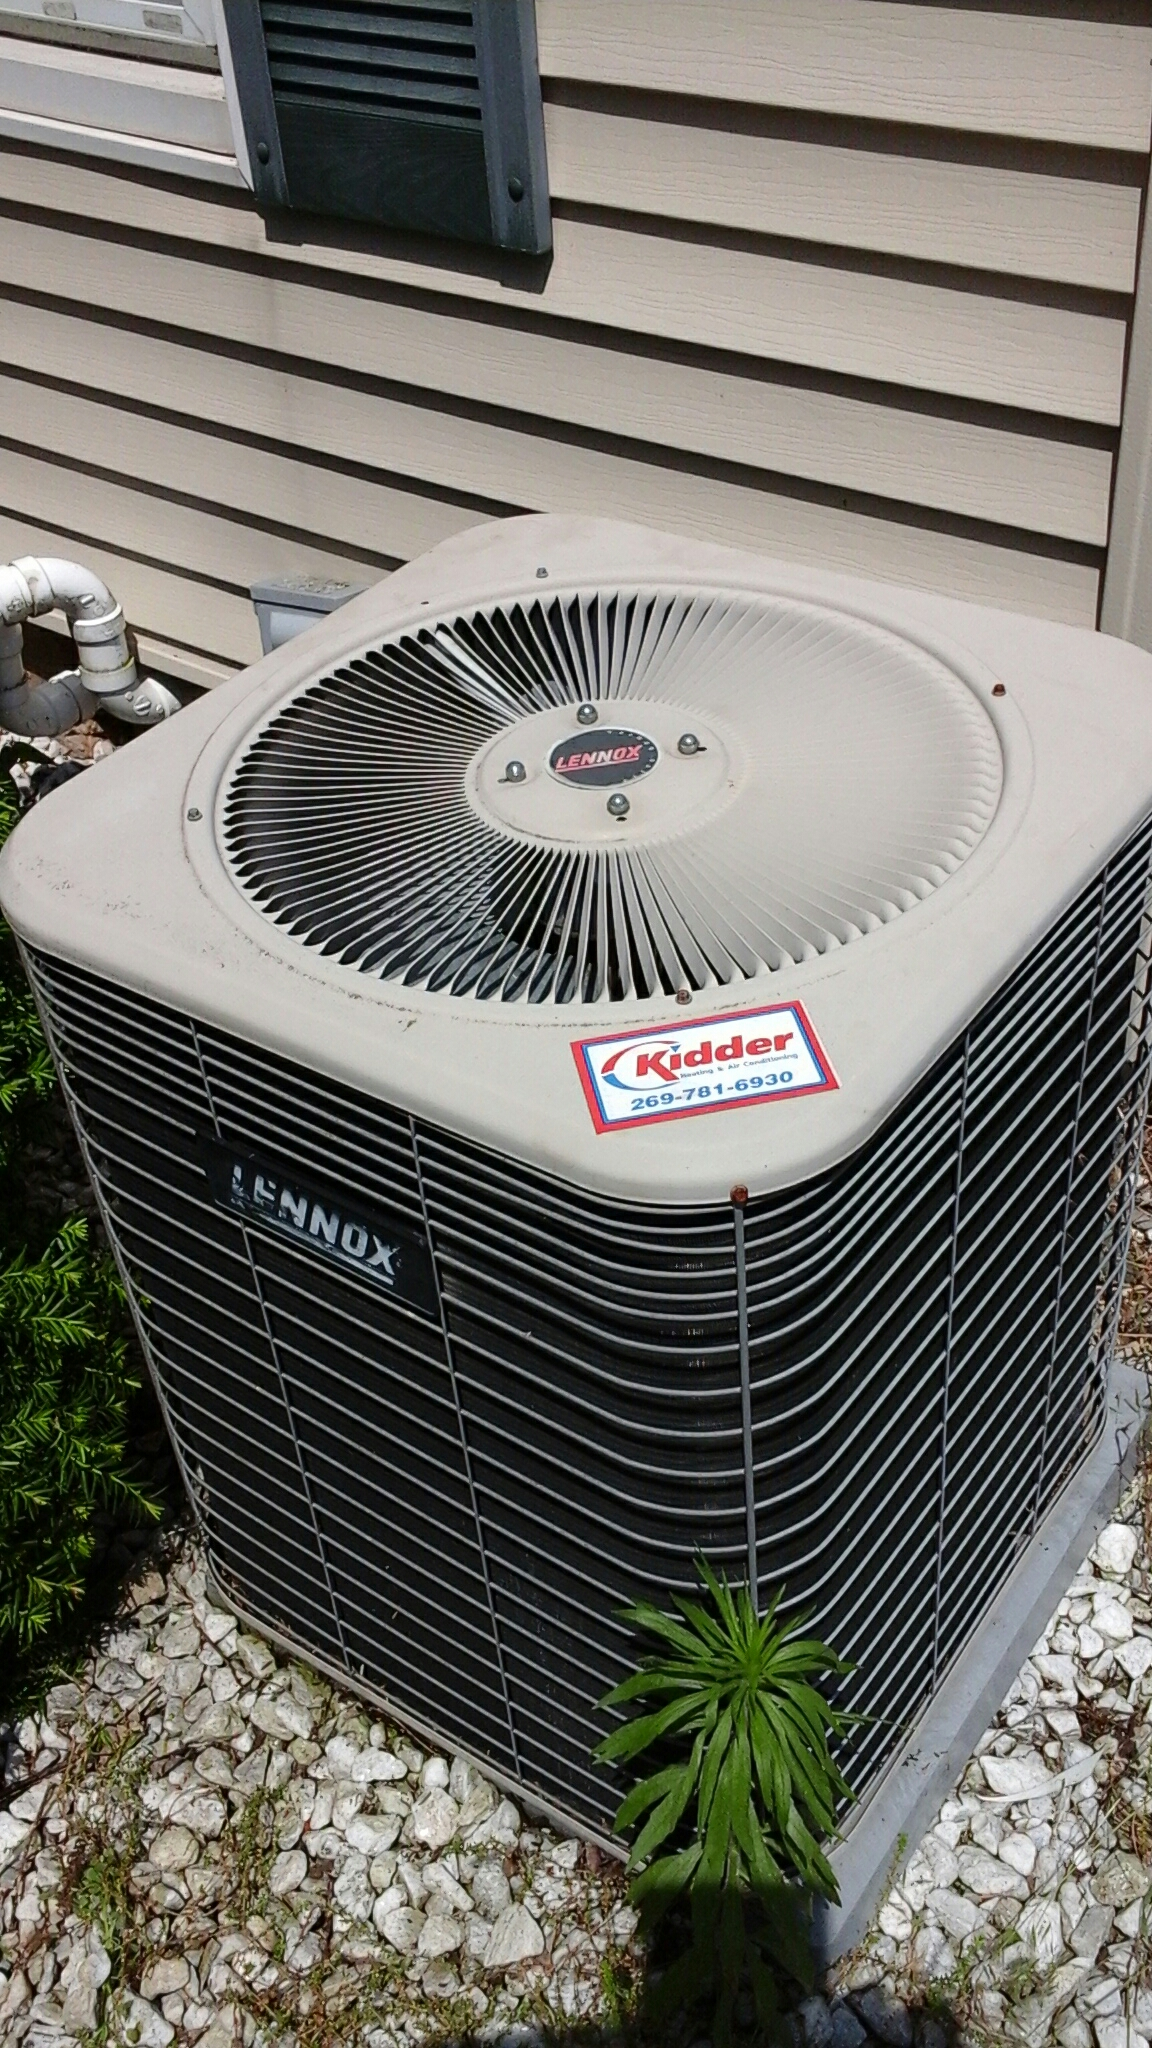 East Leroy, MI - Performed a precision tune-up on a Lennox HS 29 air conditioning unit with R - 22 refrigerant and replaced the contactor.